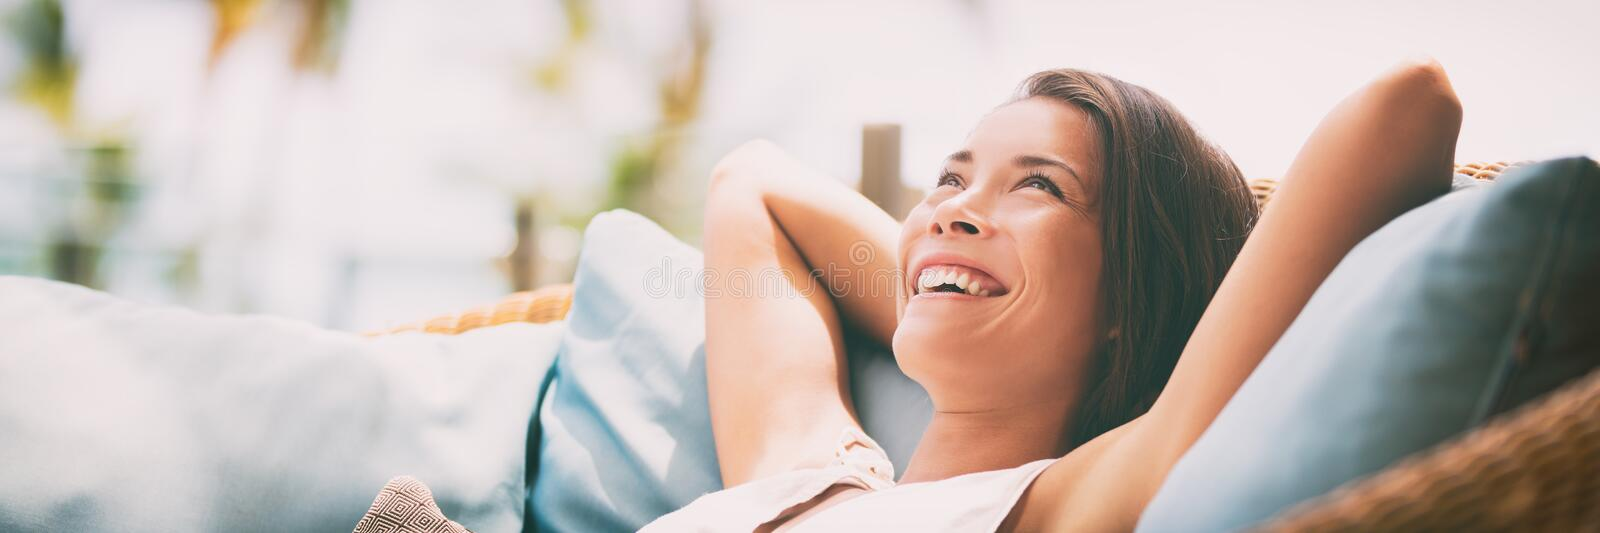 Relaxing home lifestyle happy woman in relax luxury hotel room sofa lying back with arms behind head smiling. Asian girl in stock photo